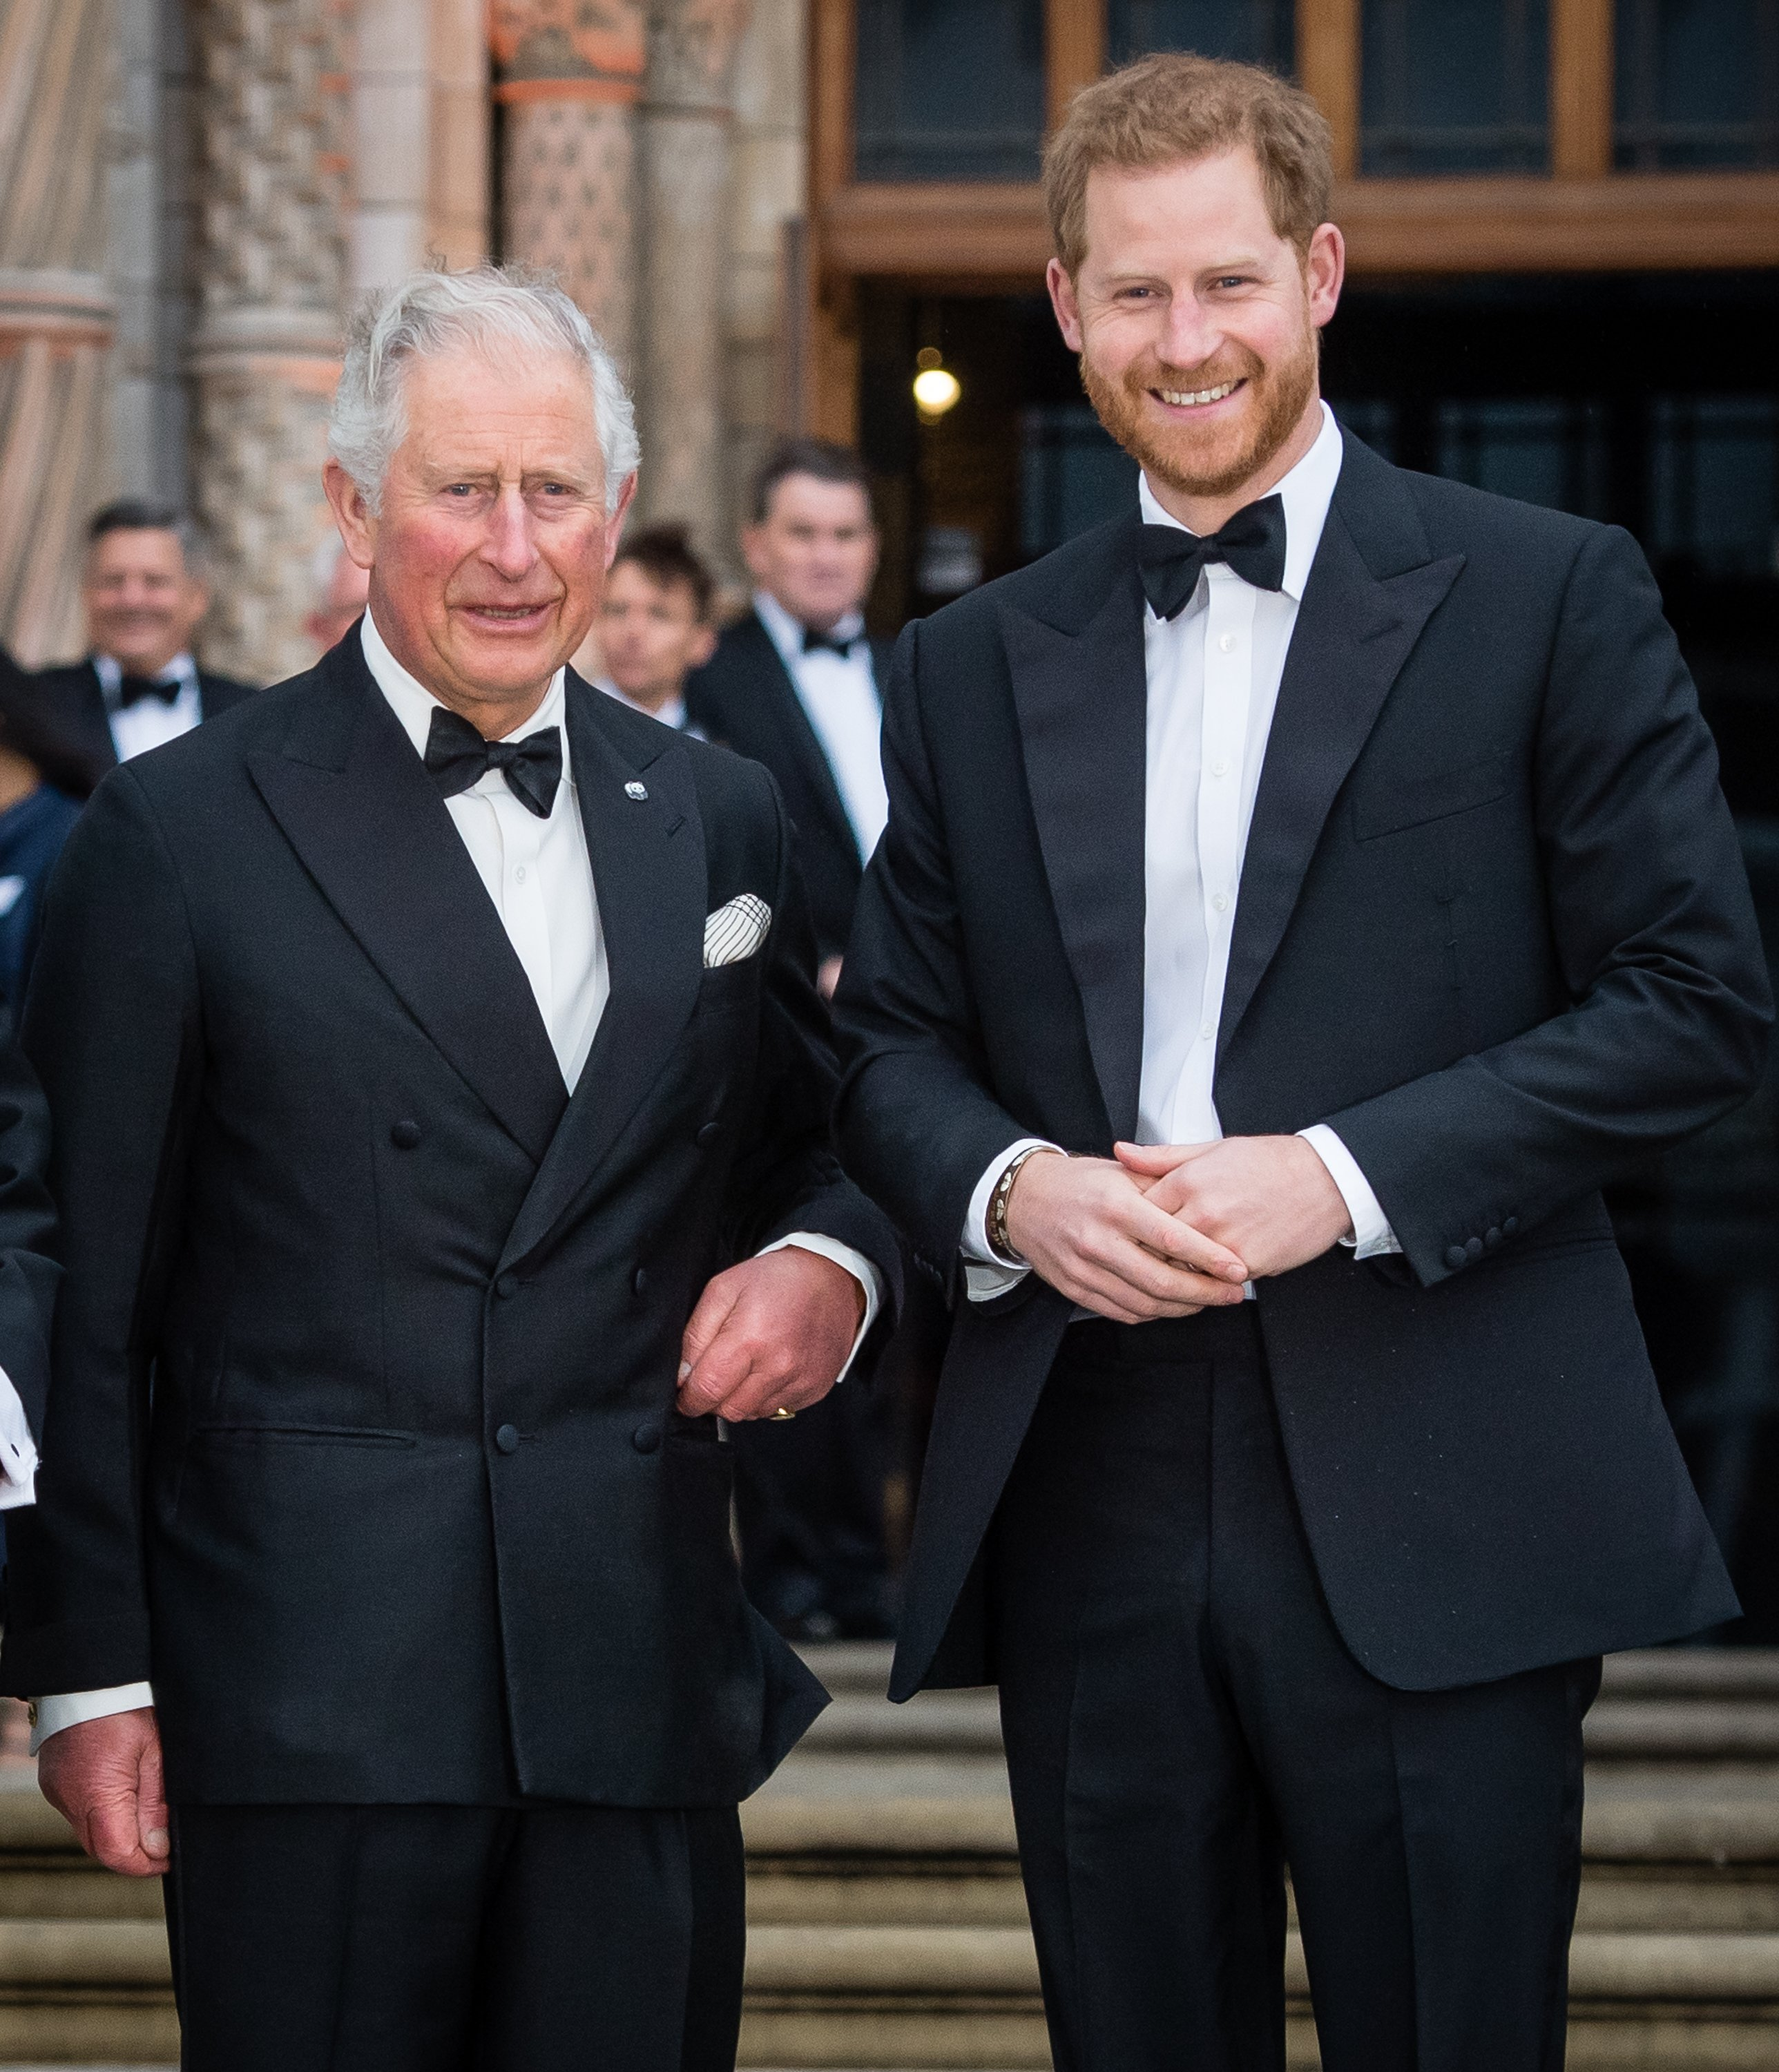 Le prince Harry et le prince Charles   photo : Getty Images